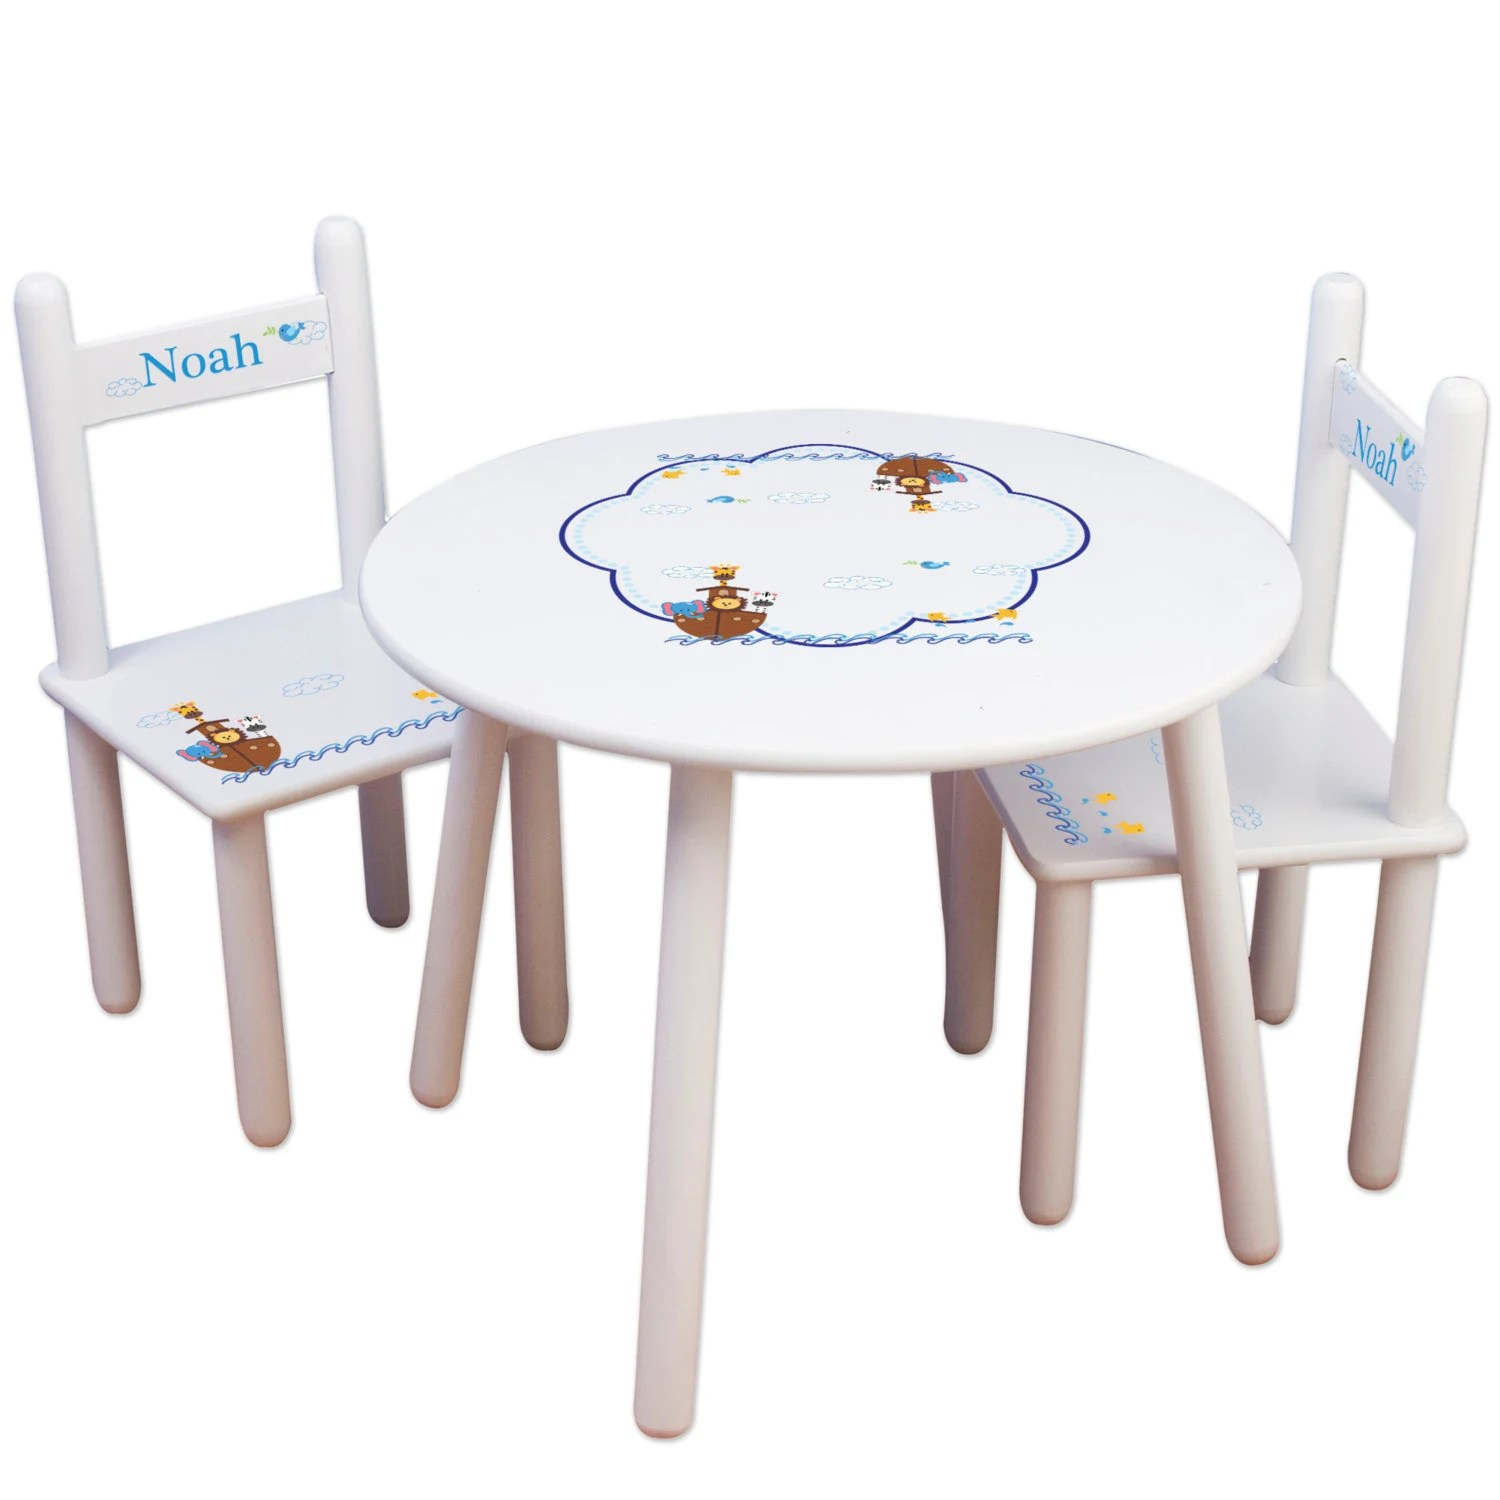 Personalized Chairs For Baby Personalized Child S Table Chair Set With Noahs Ark Animals For Baby Toddler Childrens Playroom Nursery Bedroom 2 Chairs Tablesetrnd 209